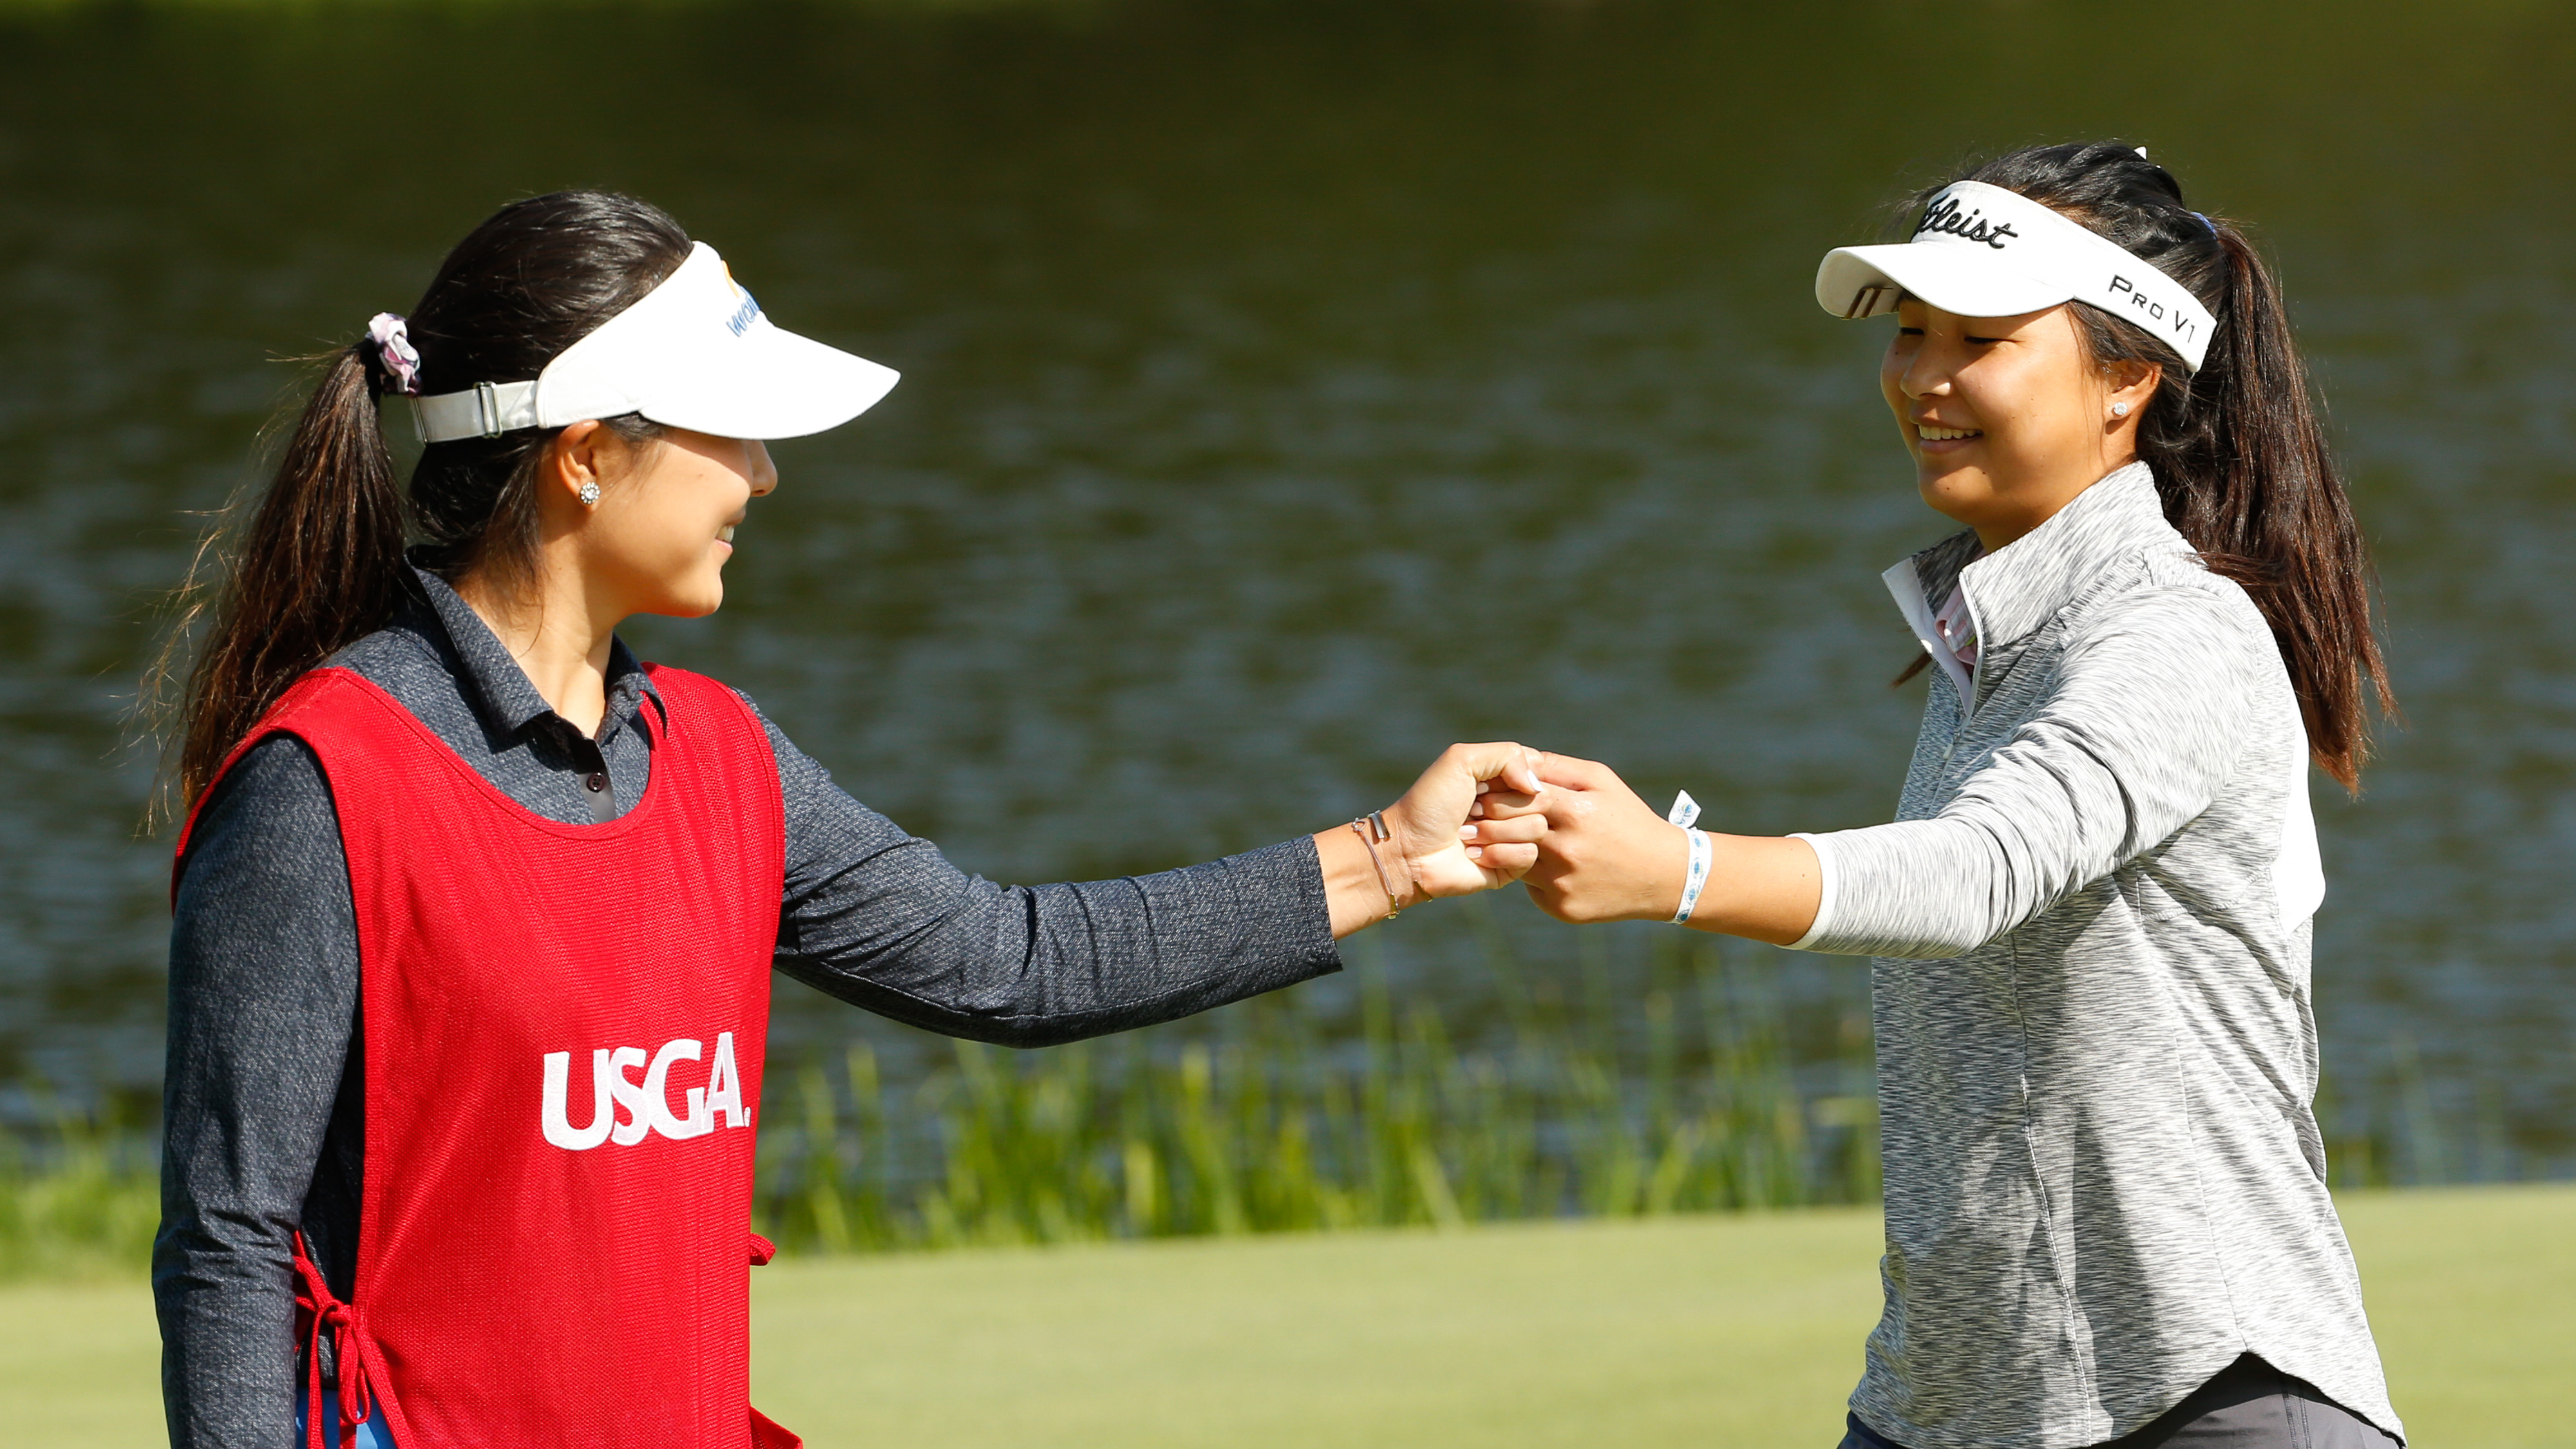 http://res.cloudinary.com/usga/image/upload/v1/usga/images/championships/2019/girls-junior/galleries/tuesday-stroke-play/14_19GJR_0723_R8Q8113.jpg